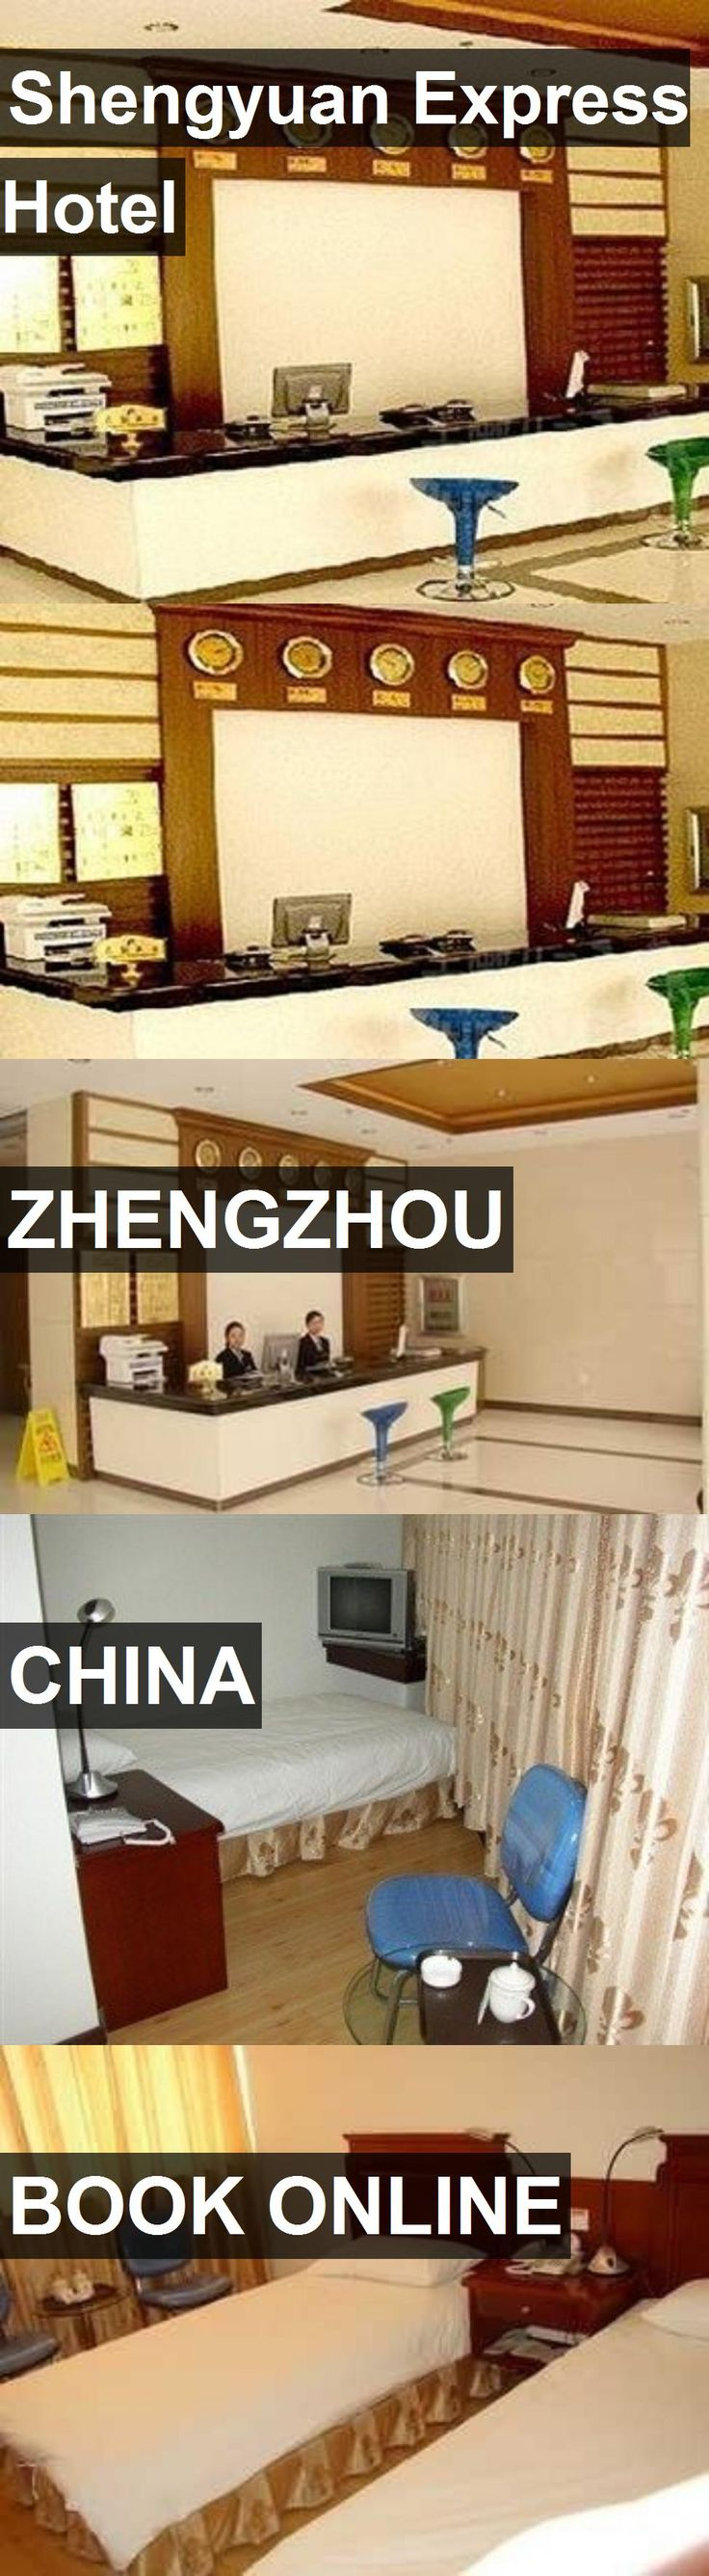 Shengyuan Express Hotel in Zhengzhou, China. For more information, photos, reviews and best prices please follow the link. #China #Zhengzhou #travel #vacation #hotel